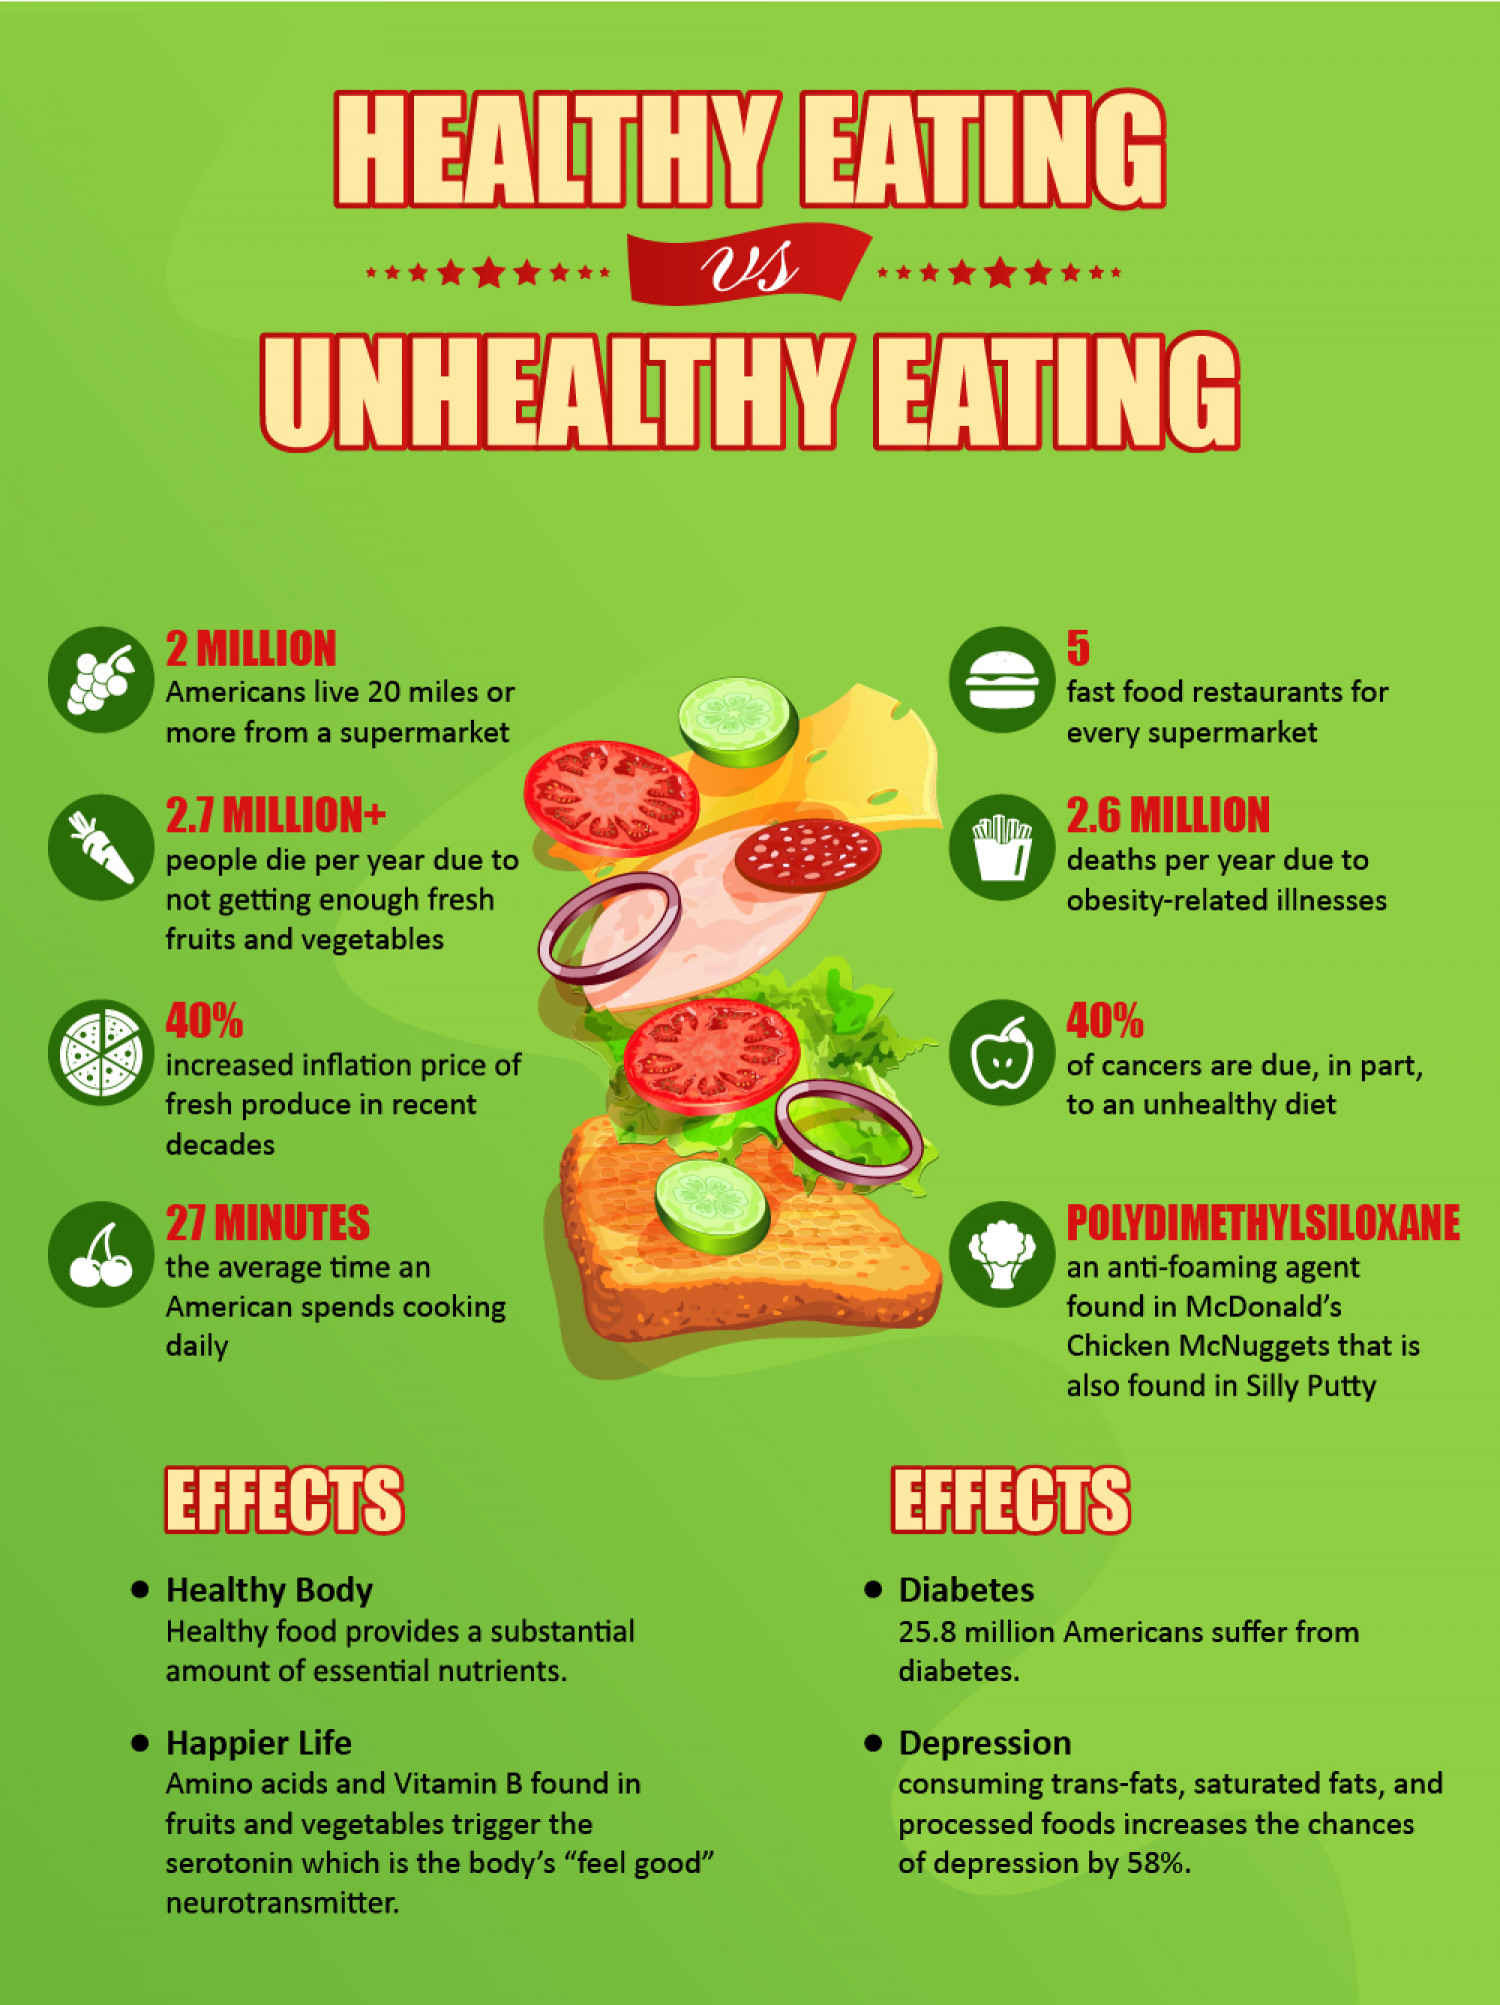 healthy eating is healthy living essay Expository essay on healthy eating and exercise modern people think more about nutrition and physical exercises nowadays centuries ago, very few people suffered from obesity and various diseases related to improper eating.